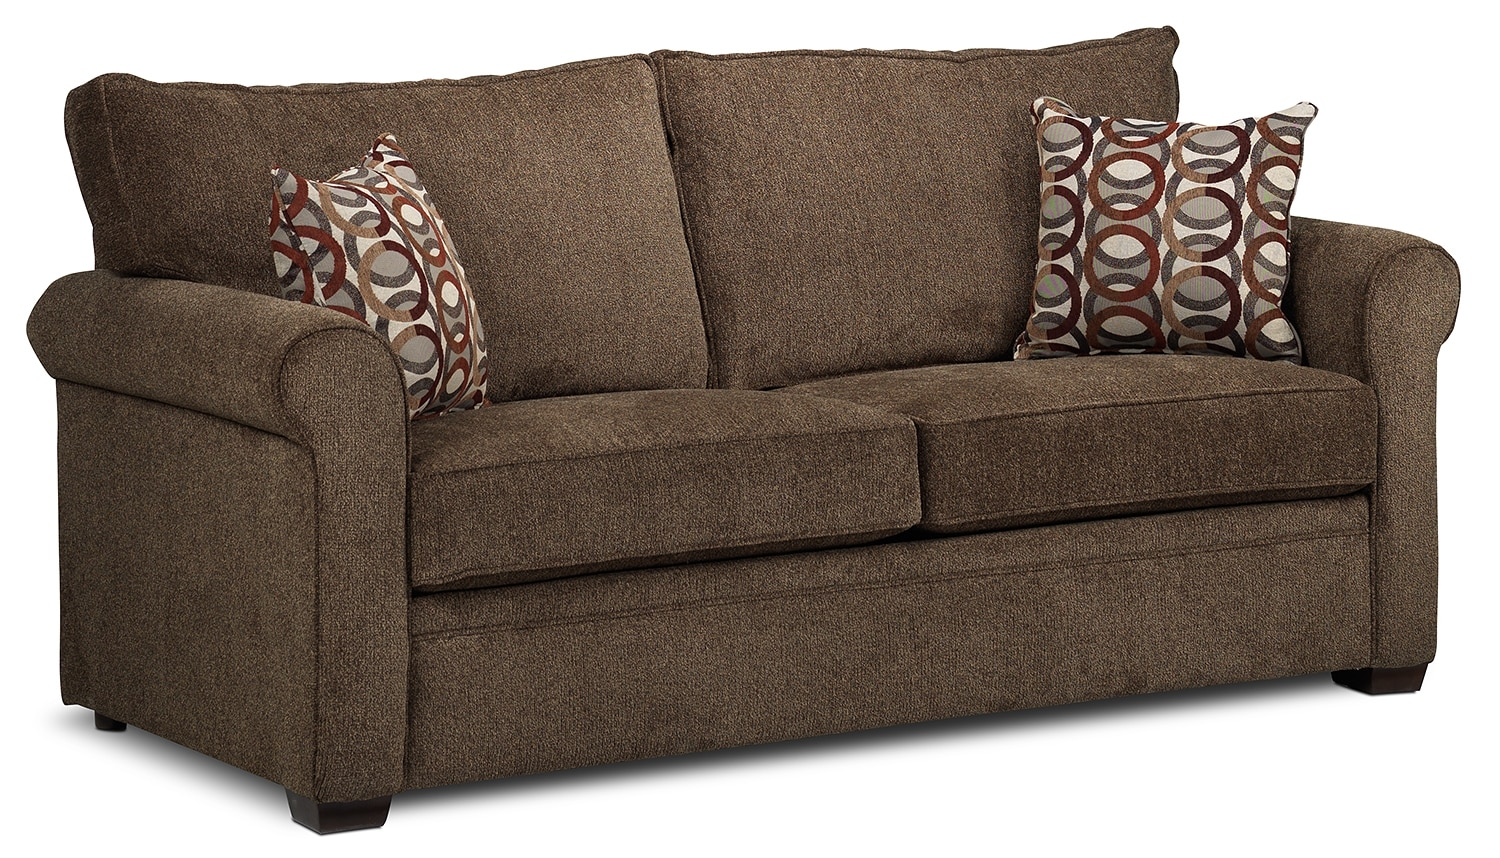 Accent and Occasional Furniture - Ithaca Queen Sofabed - Cocoa